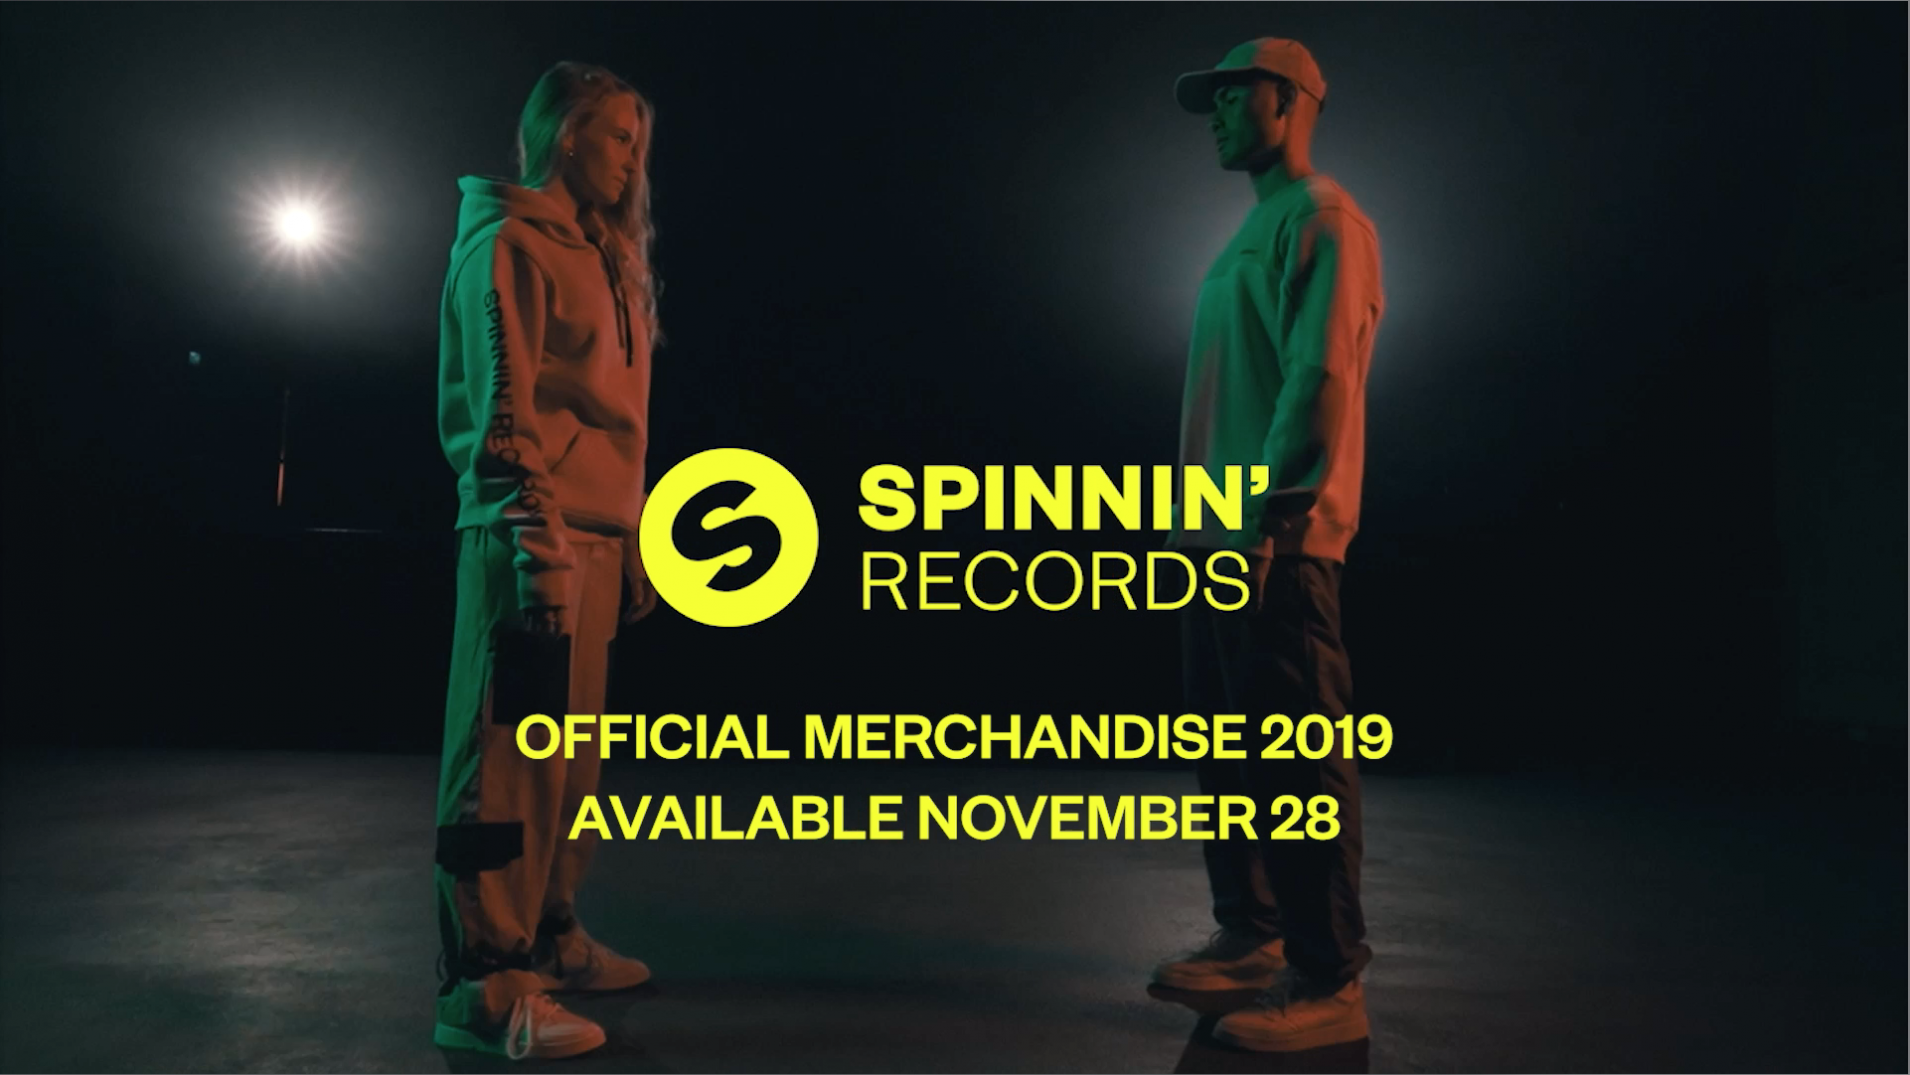 Spinnin' Records | Official Merchandise 2019 - Coming Soon